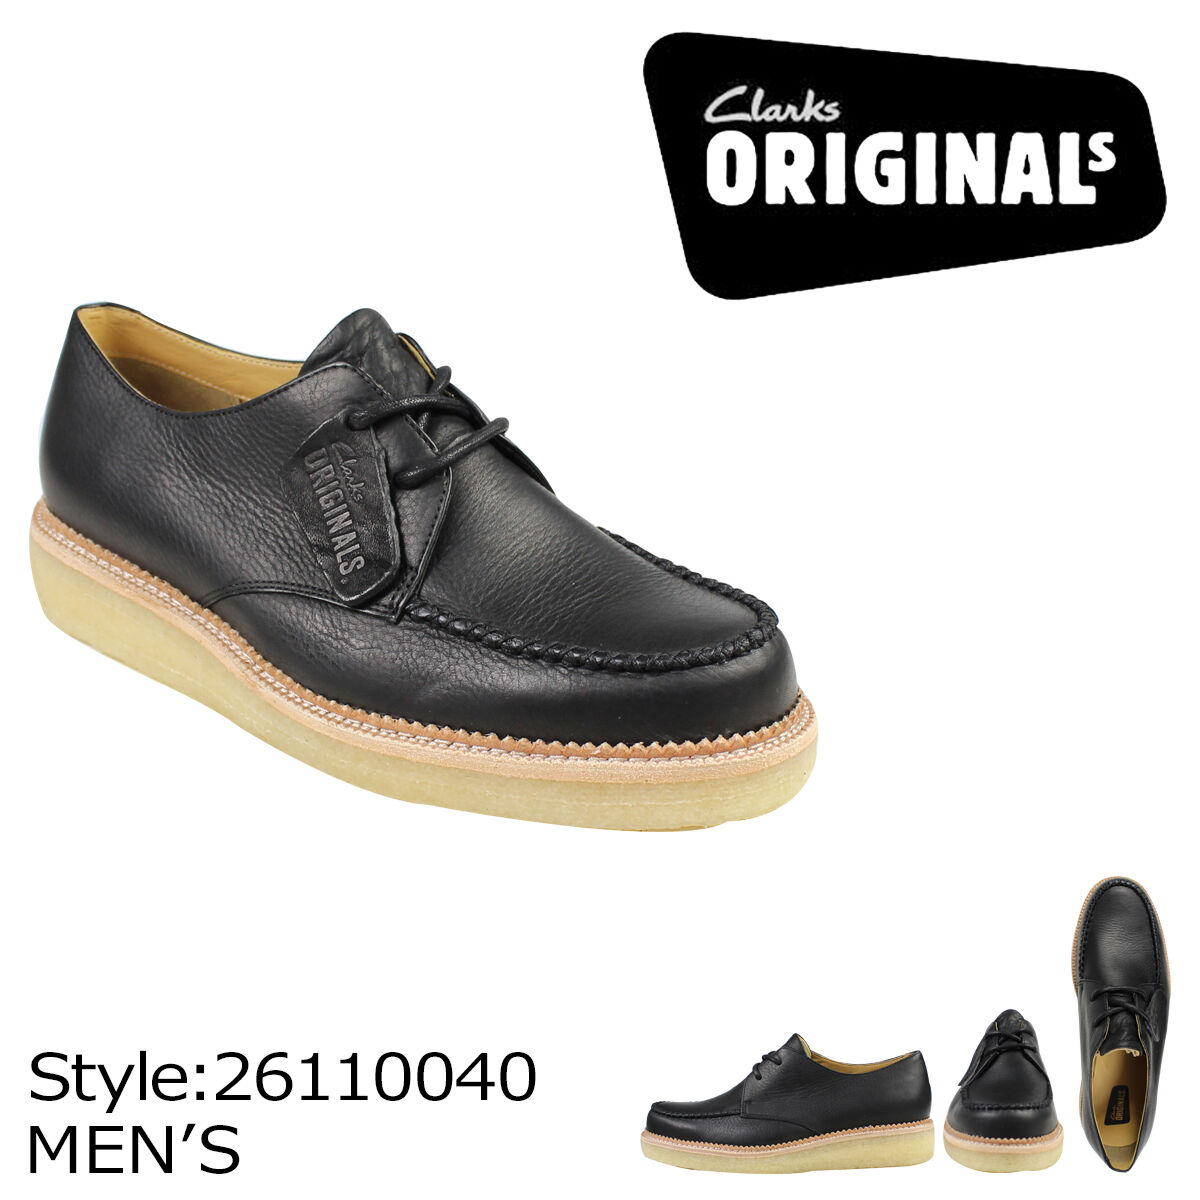 Clarks Originals ** Wallabee Beckery Beckery Beckery Field ** noir LEA ** G | La Mode